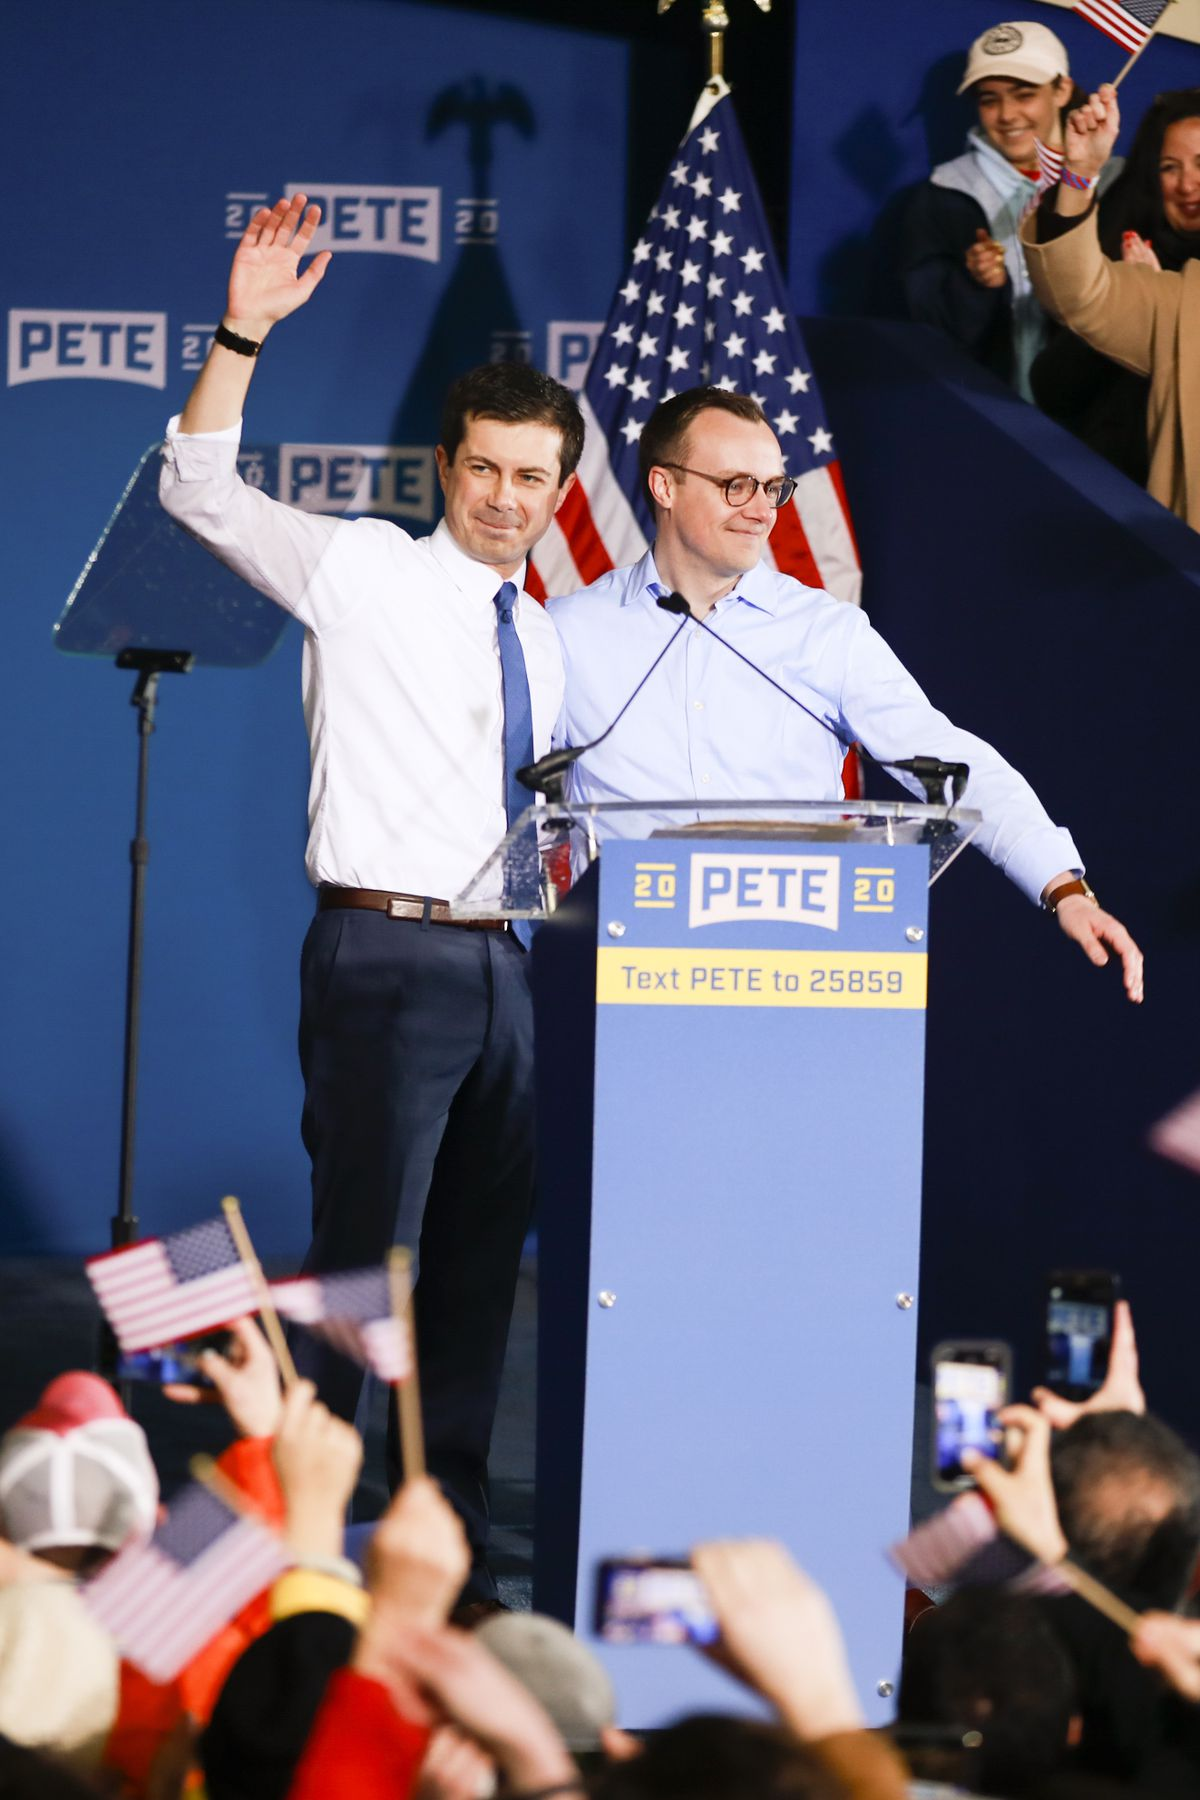 South Bend, Indiana Mayor Pete Buttigieg (left), with his husband Chasten, during a rally announcing his candidacy in South Bend, Indiana on April 14, 2019.